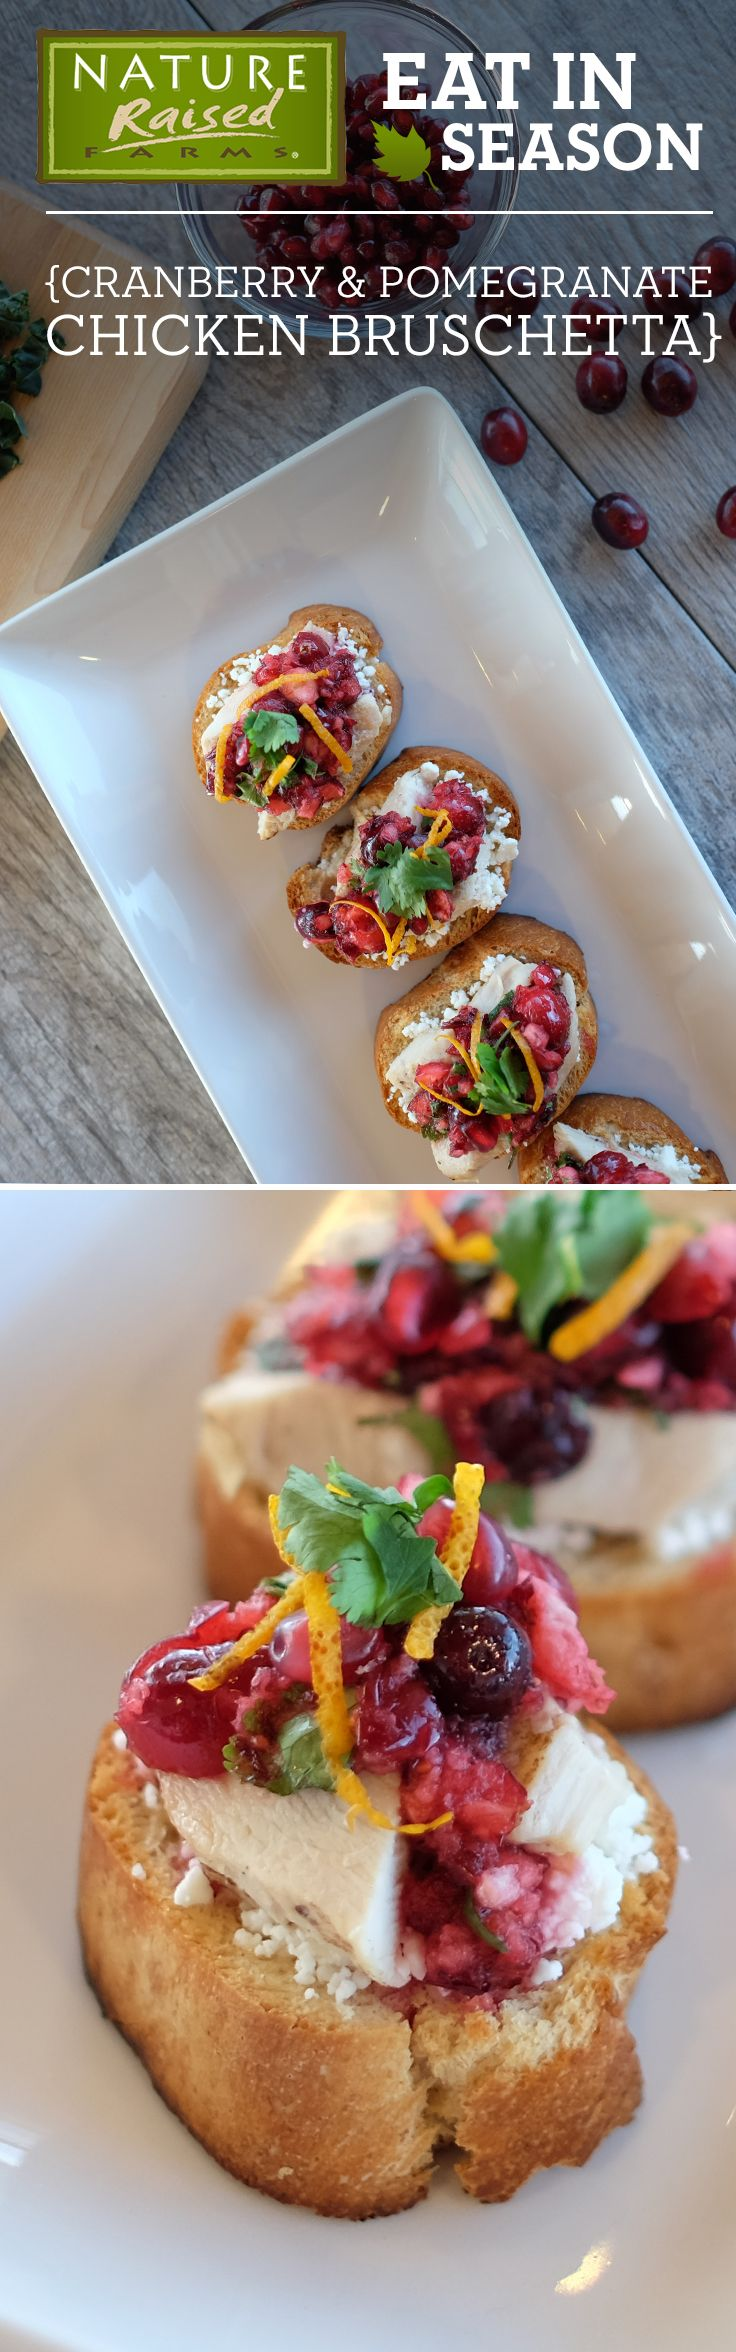 This Cranberry & Pomegranate Chicken Crostini appetizer is as beautiful as it is delicious! | NatureRaised Farms®